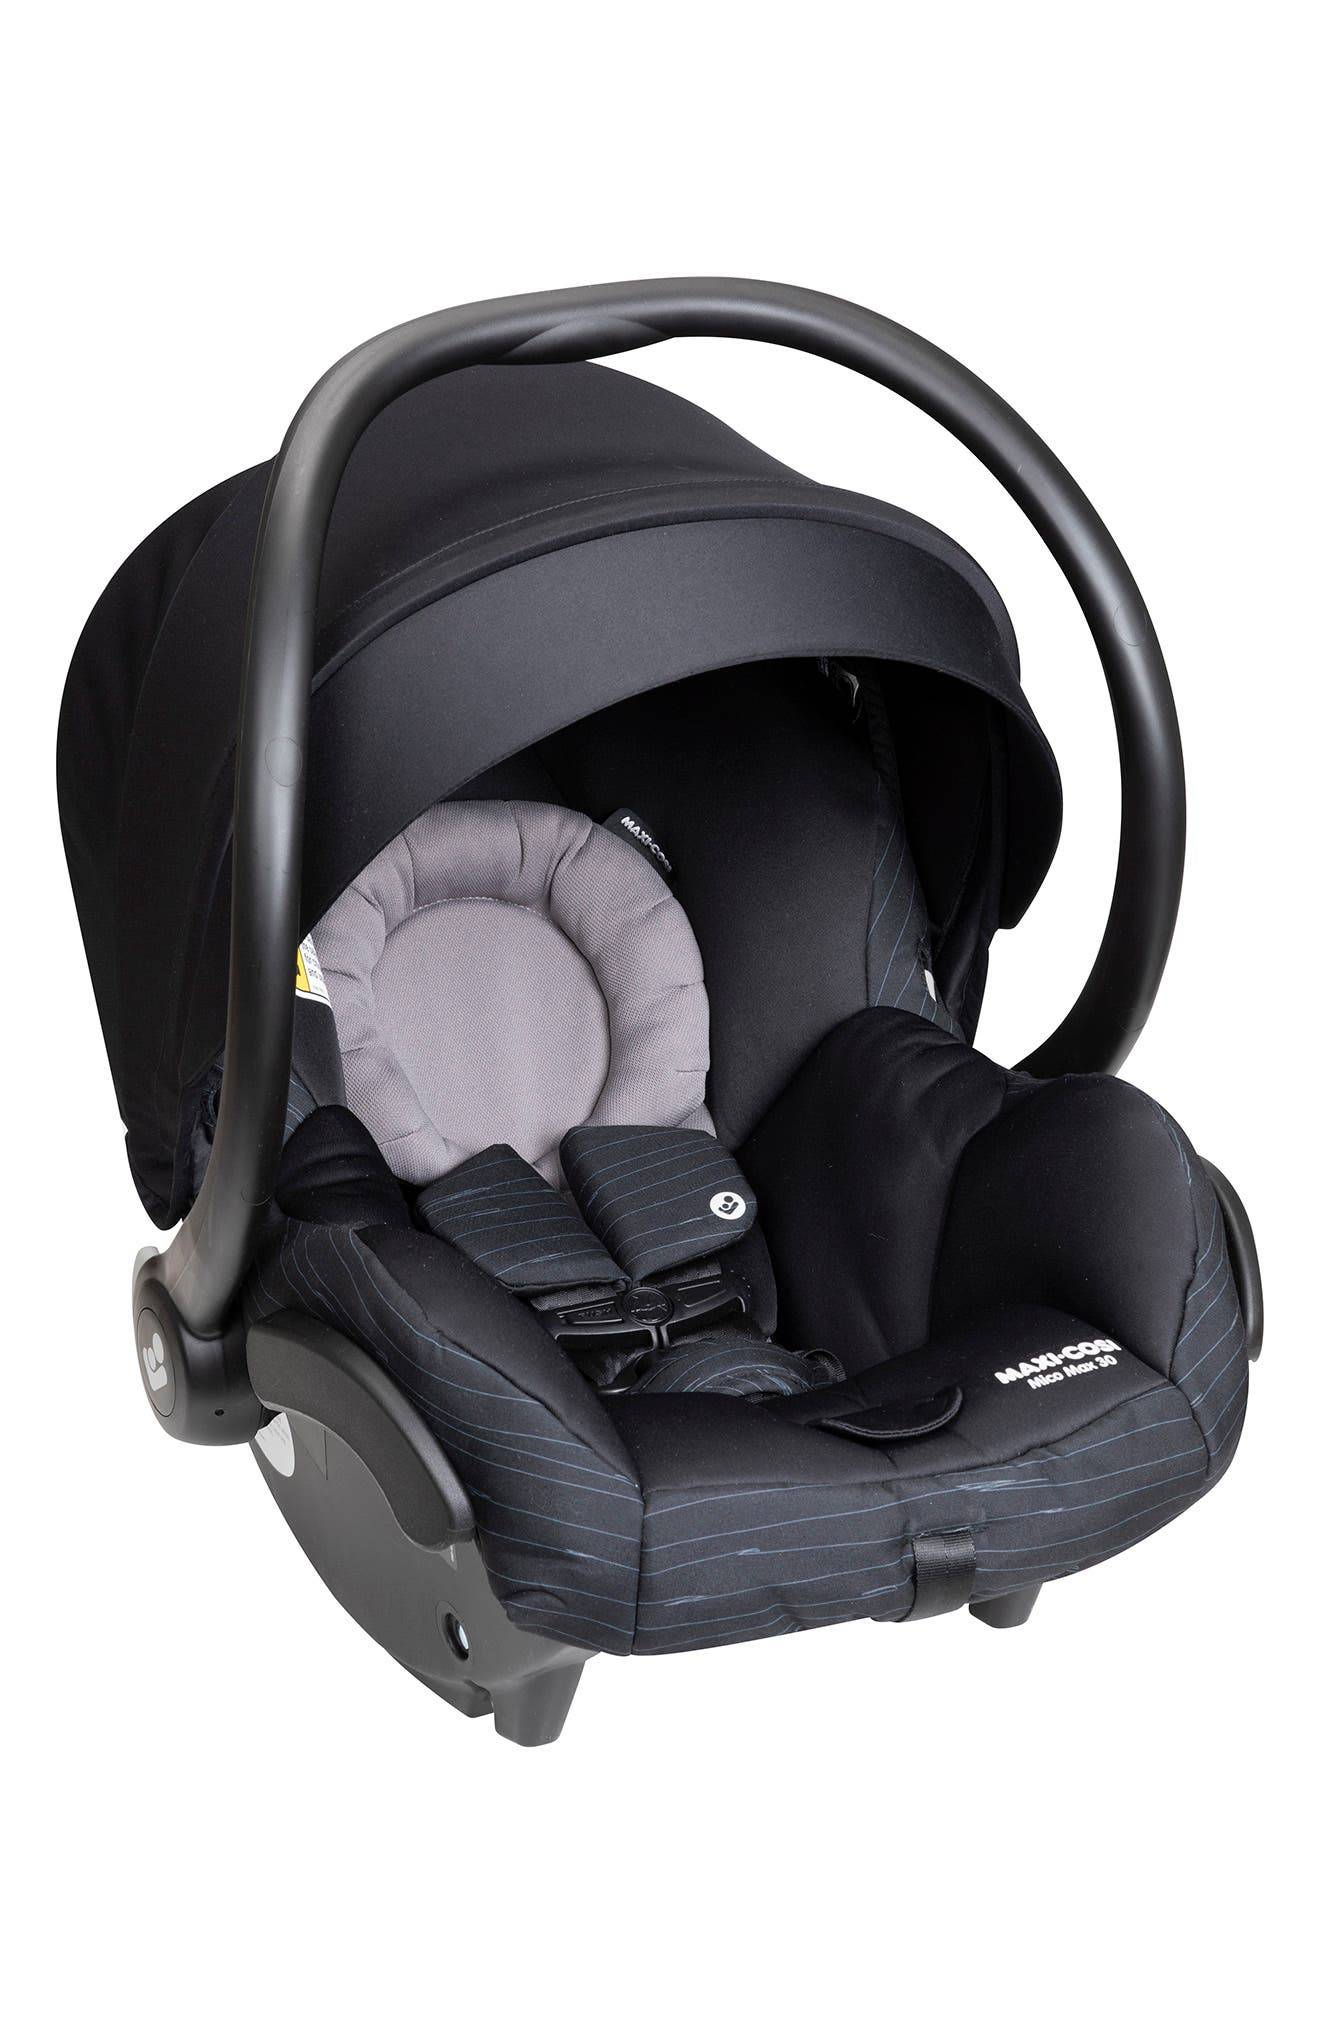 Maxi-CosiR Infant Maxi-Cosi Mico Max 30 Infant Car Seat, Size One Size - Black